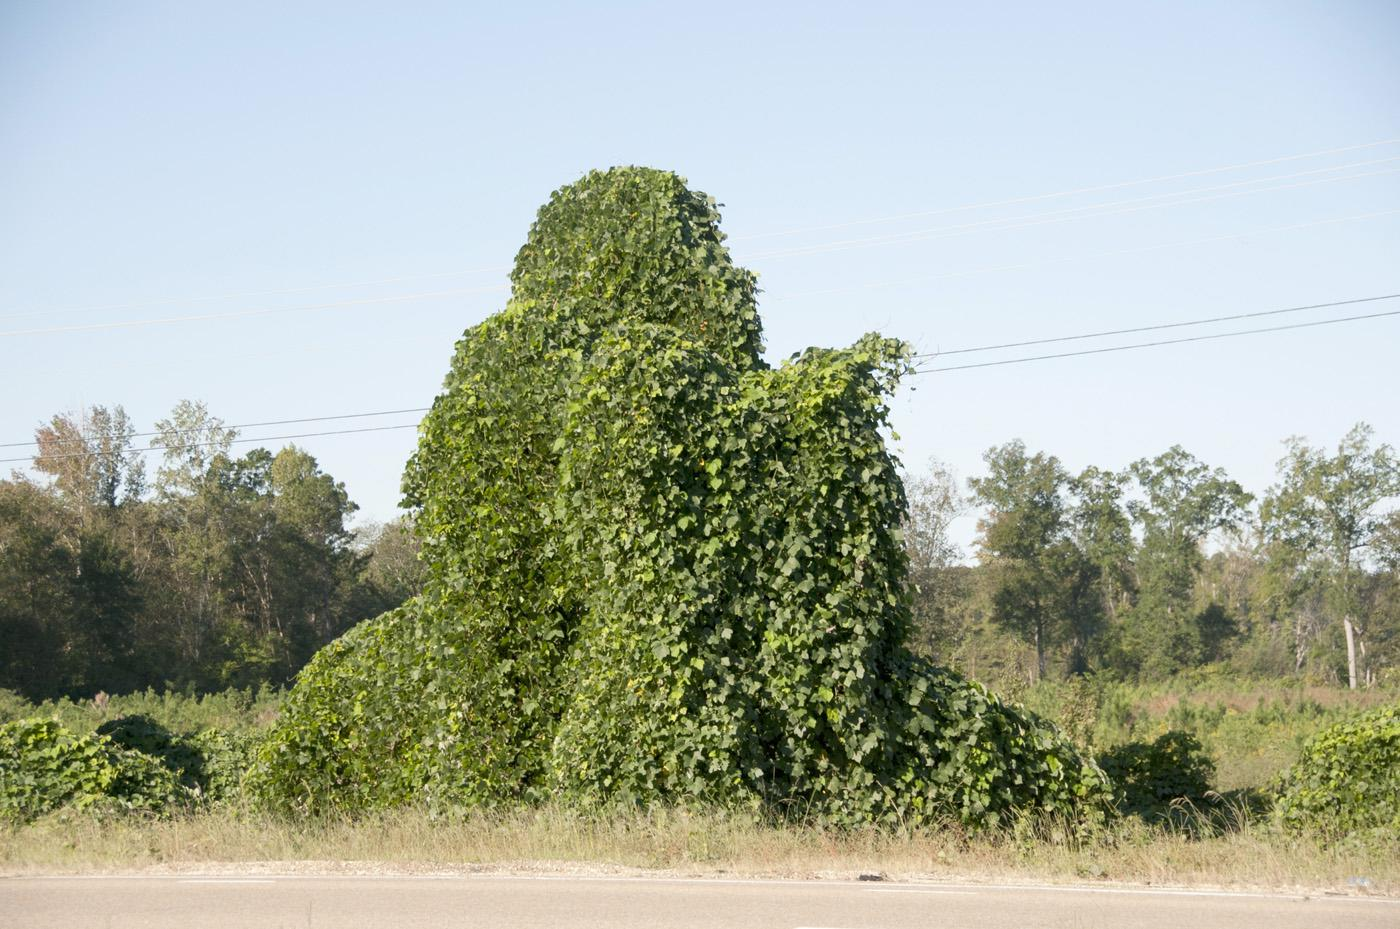 Kudzu covers large tracts of land from eastern Texas to the East Coast and as far north as Maryland. (Photo by Kat Lawrence)